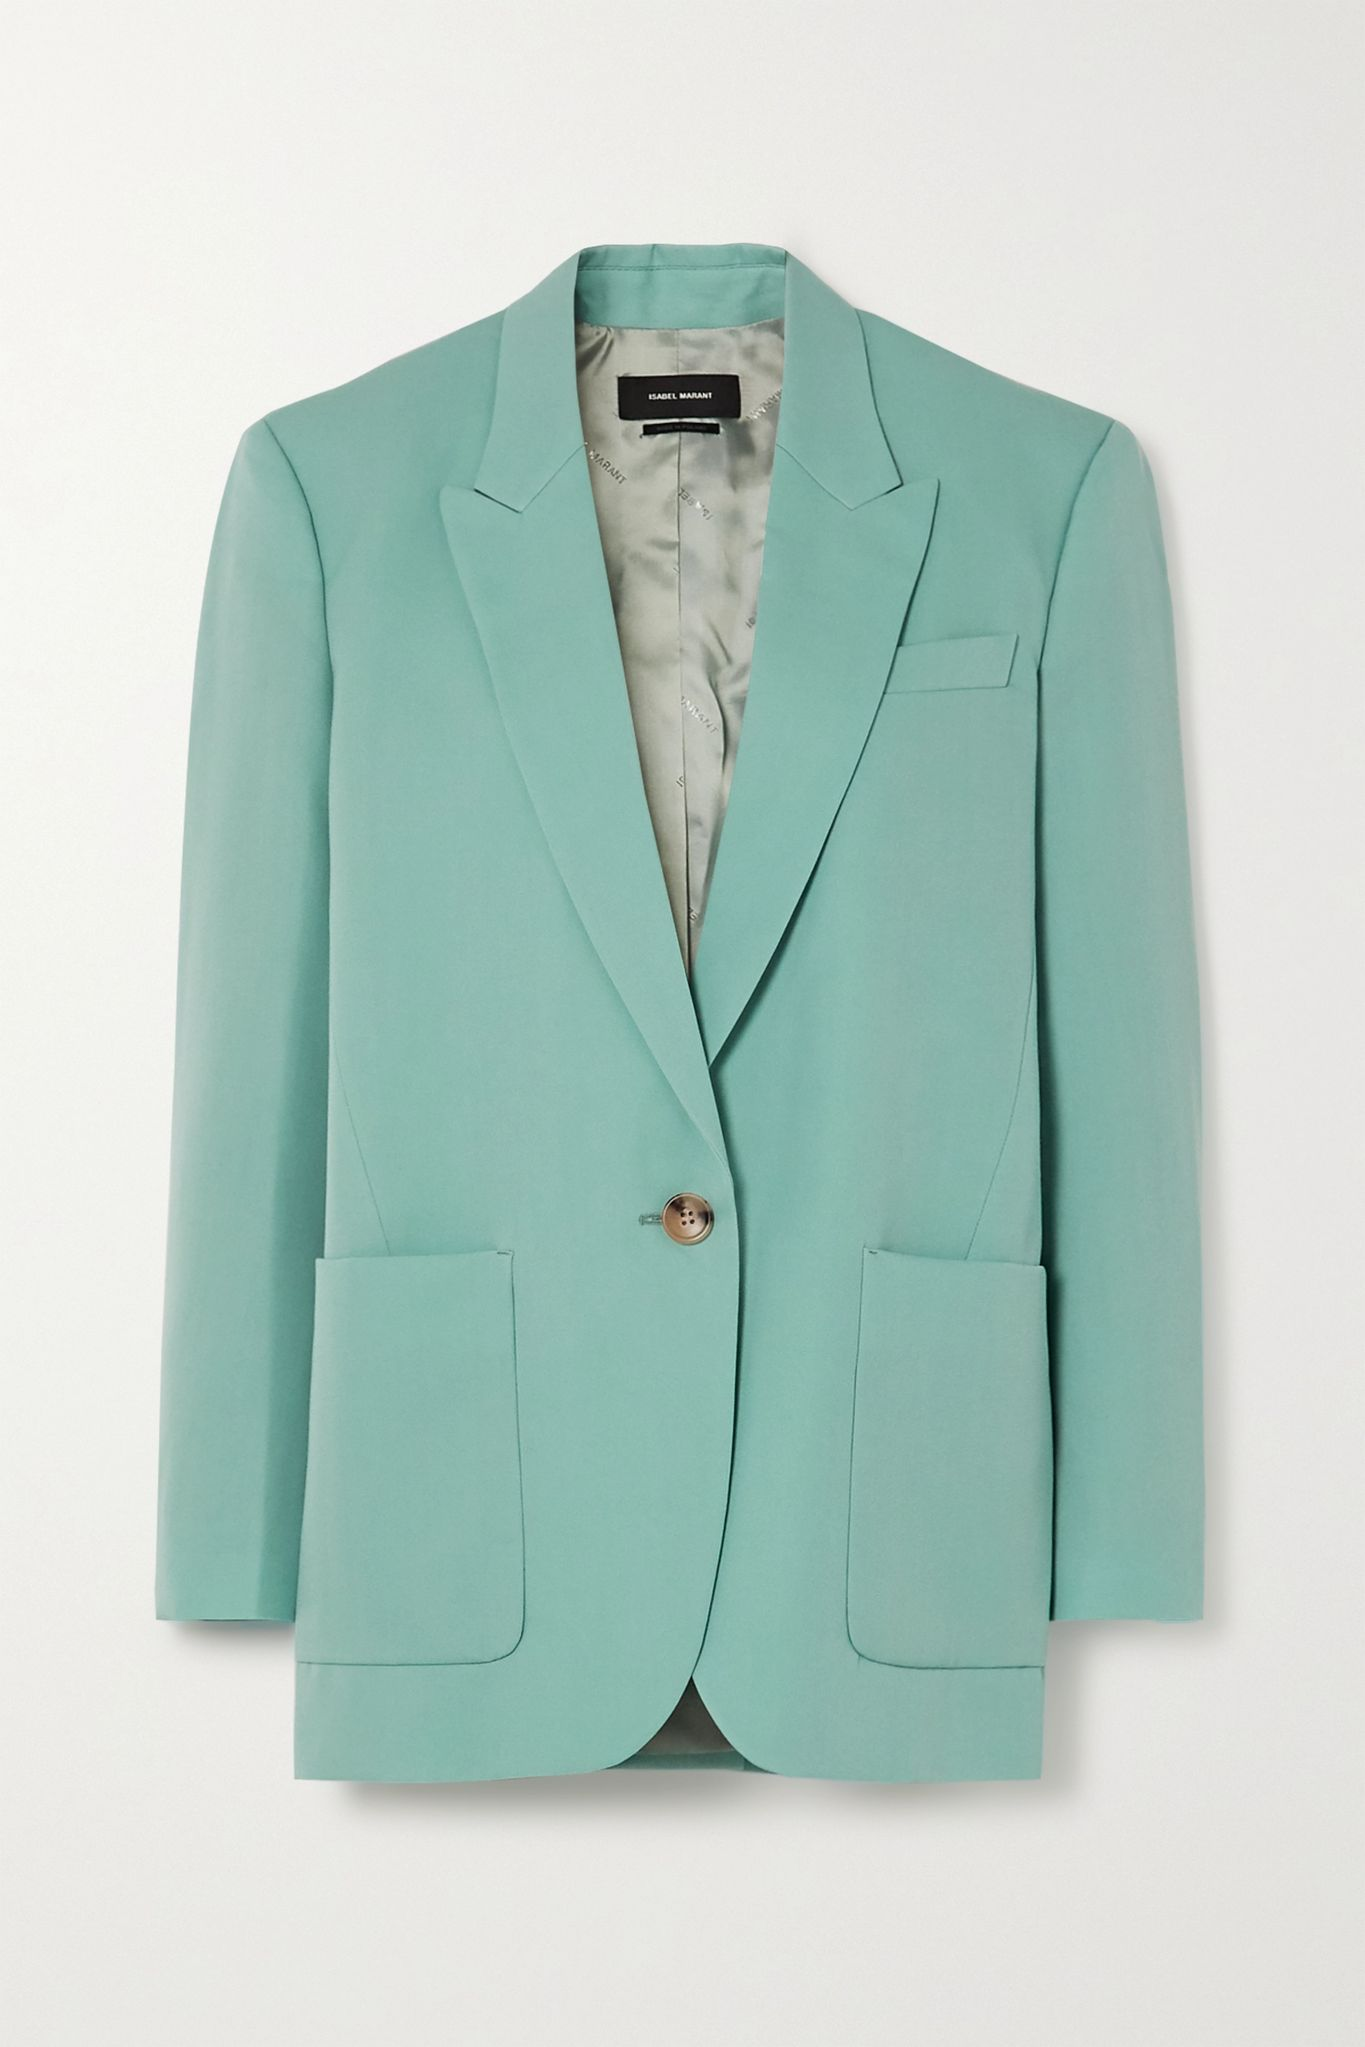 Style File | Shopping List: A Few of Daniela's Favourite Blazers